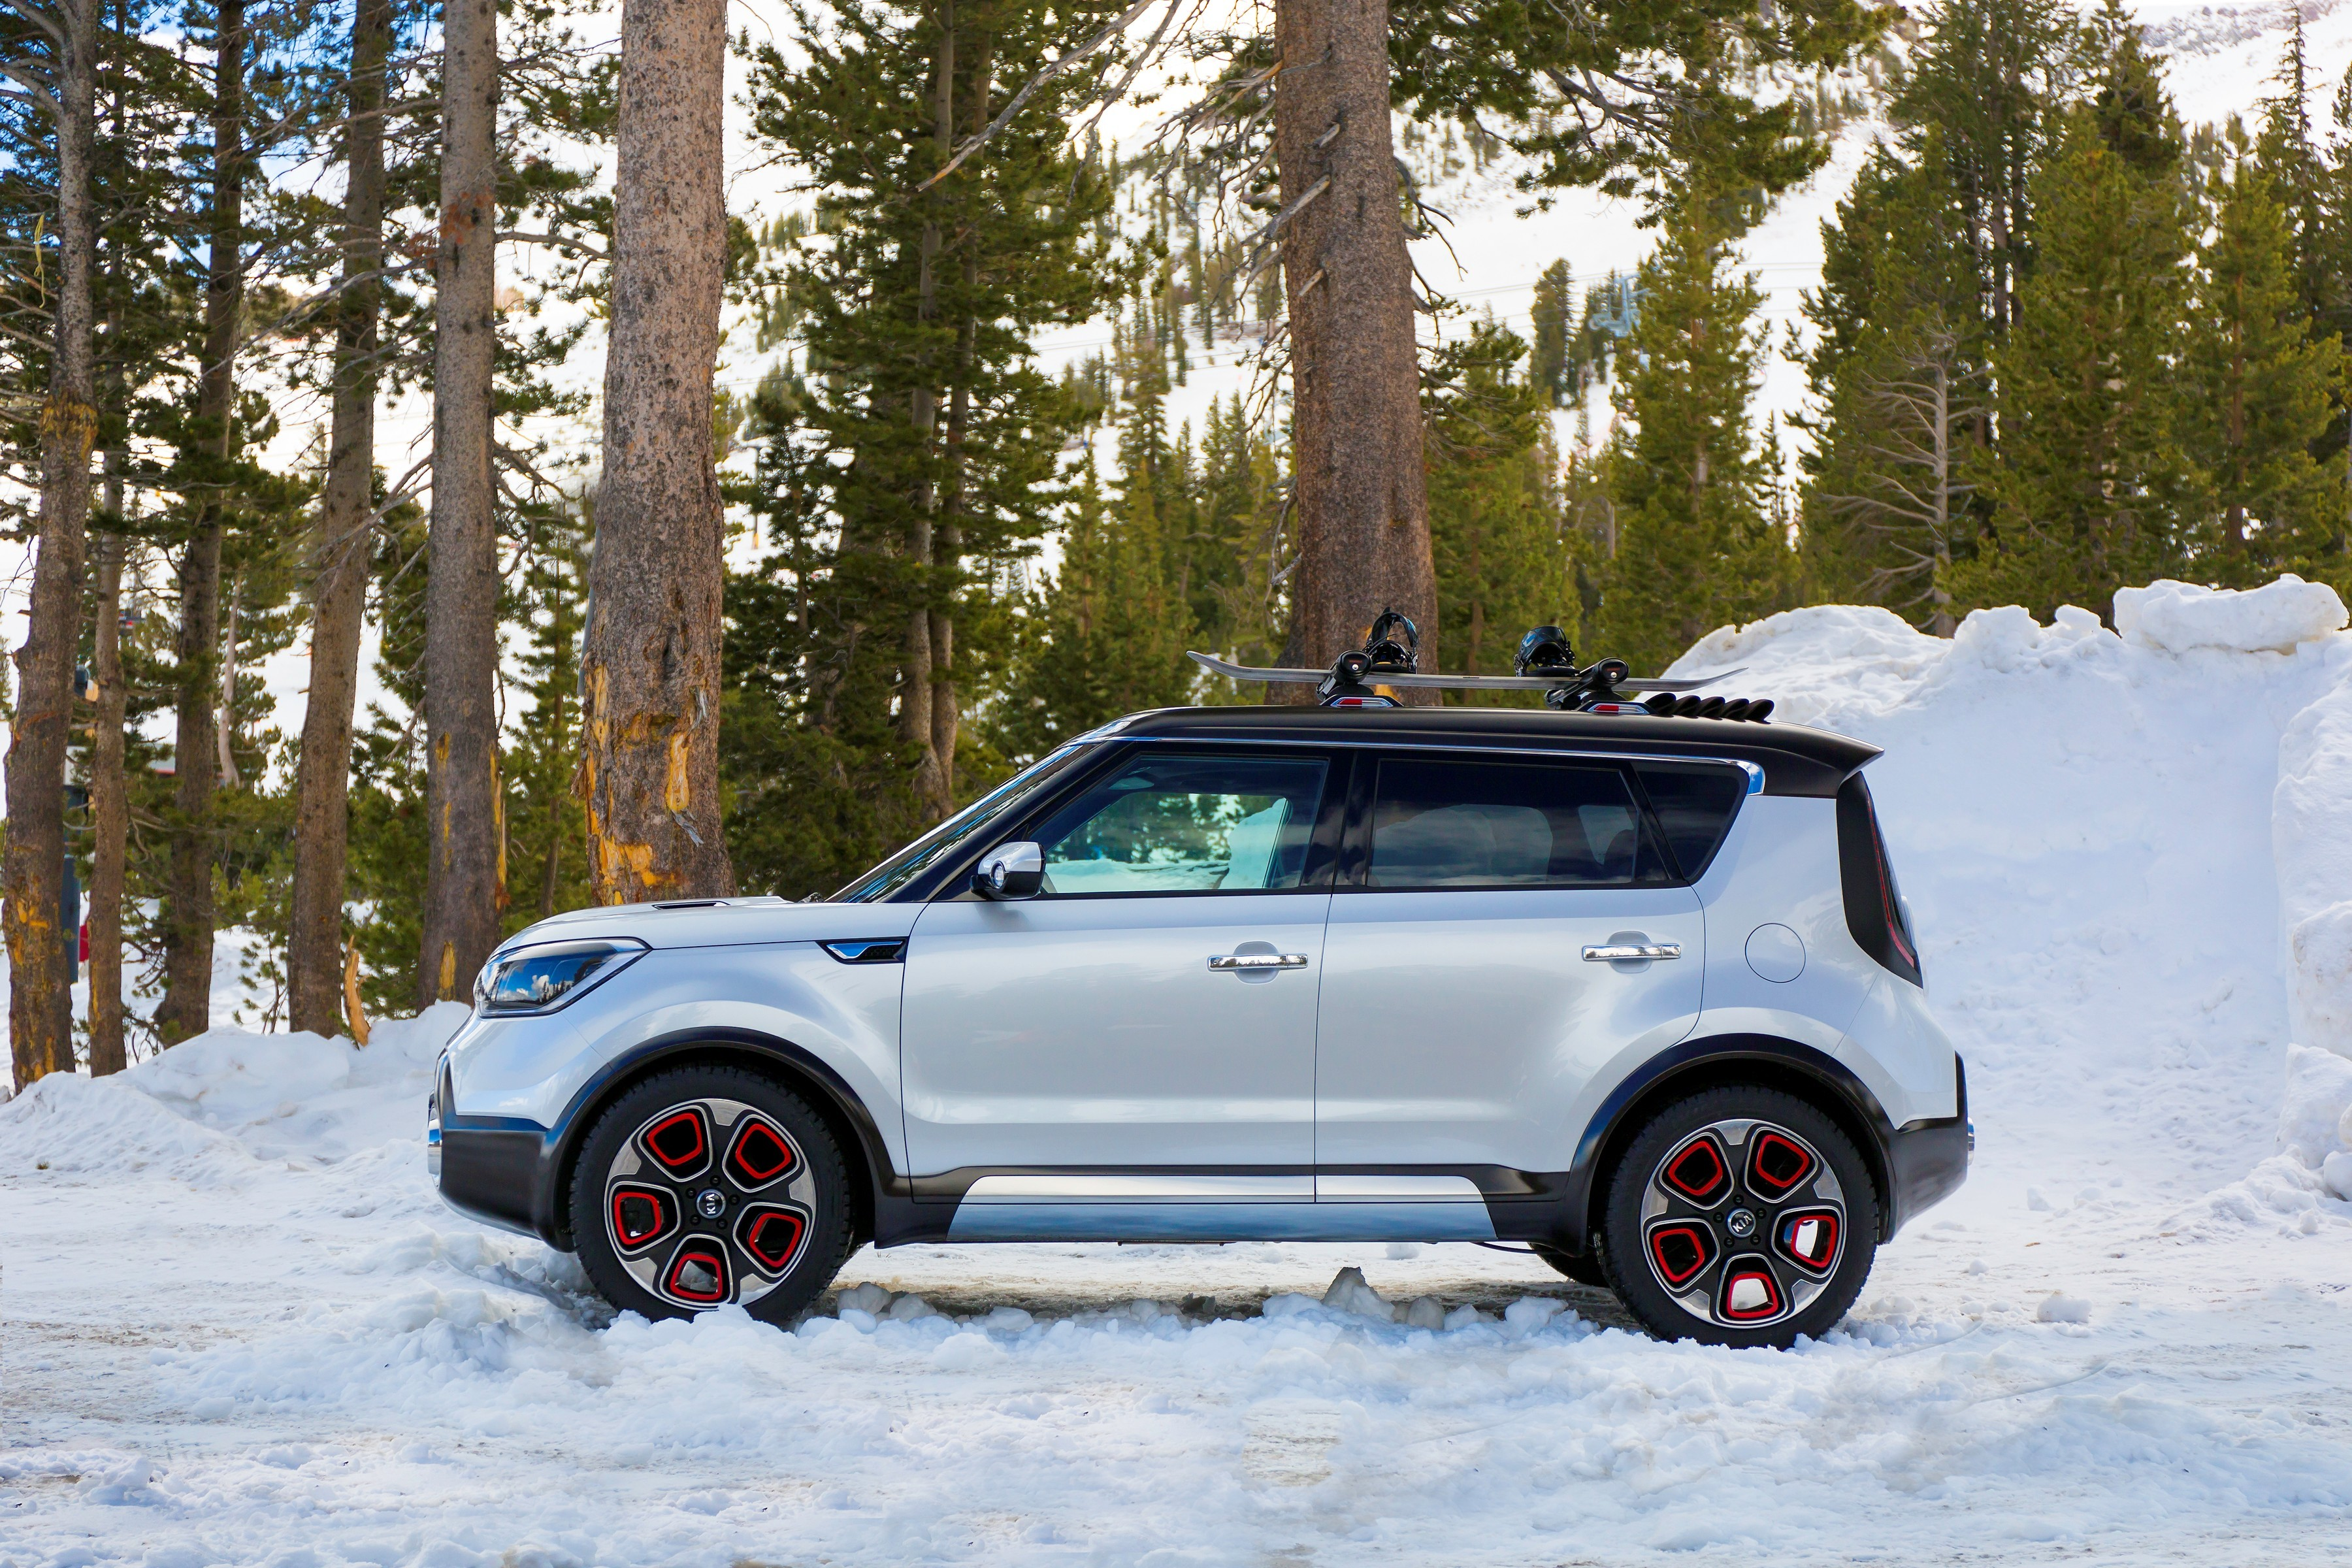 Dodge Latest Models >> Kia Trail'ster Concept Steals Your Soul with e-AWD and a Small Turbo Engine - autoevolution